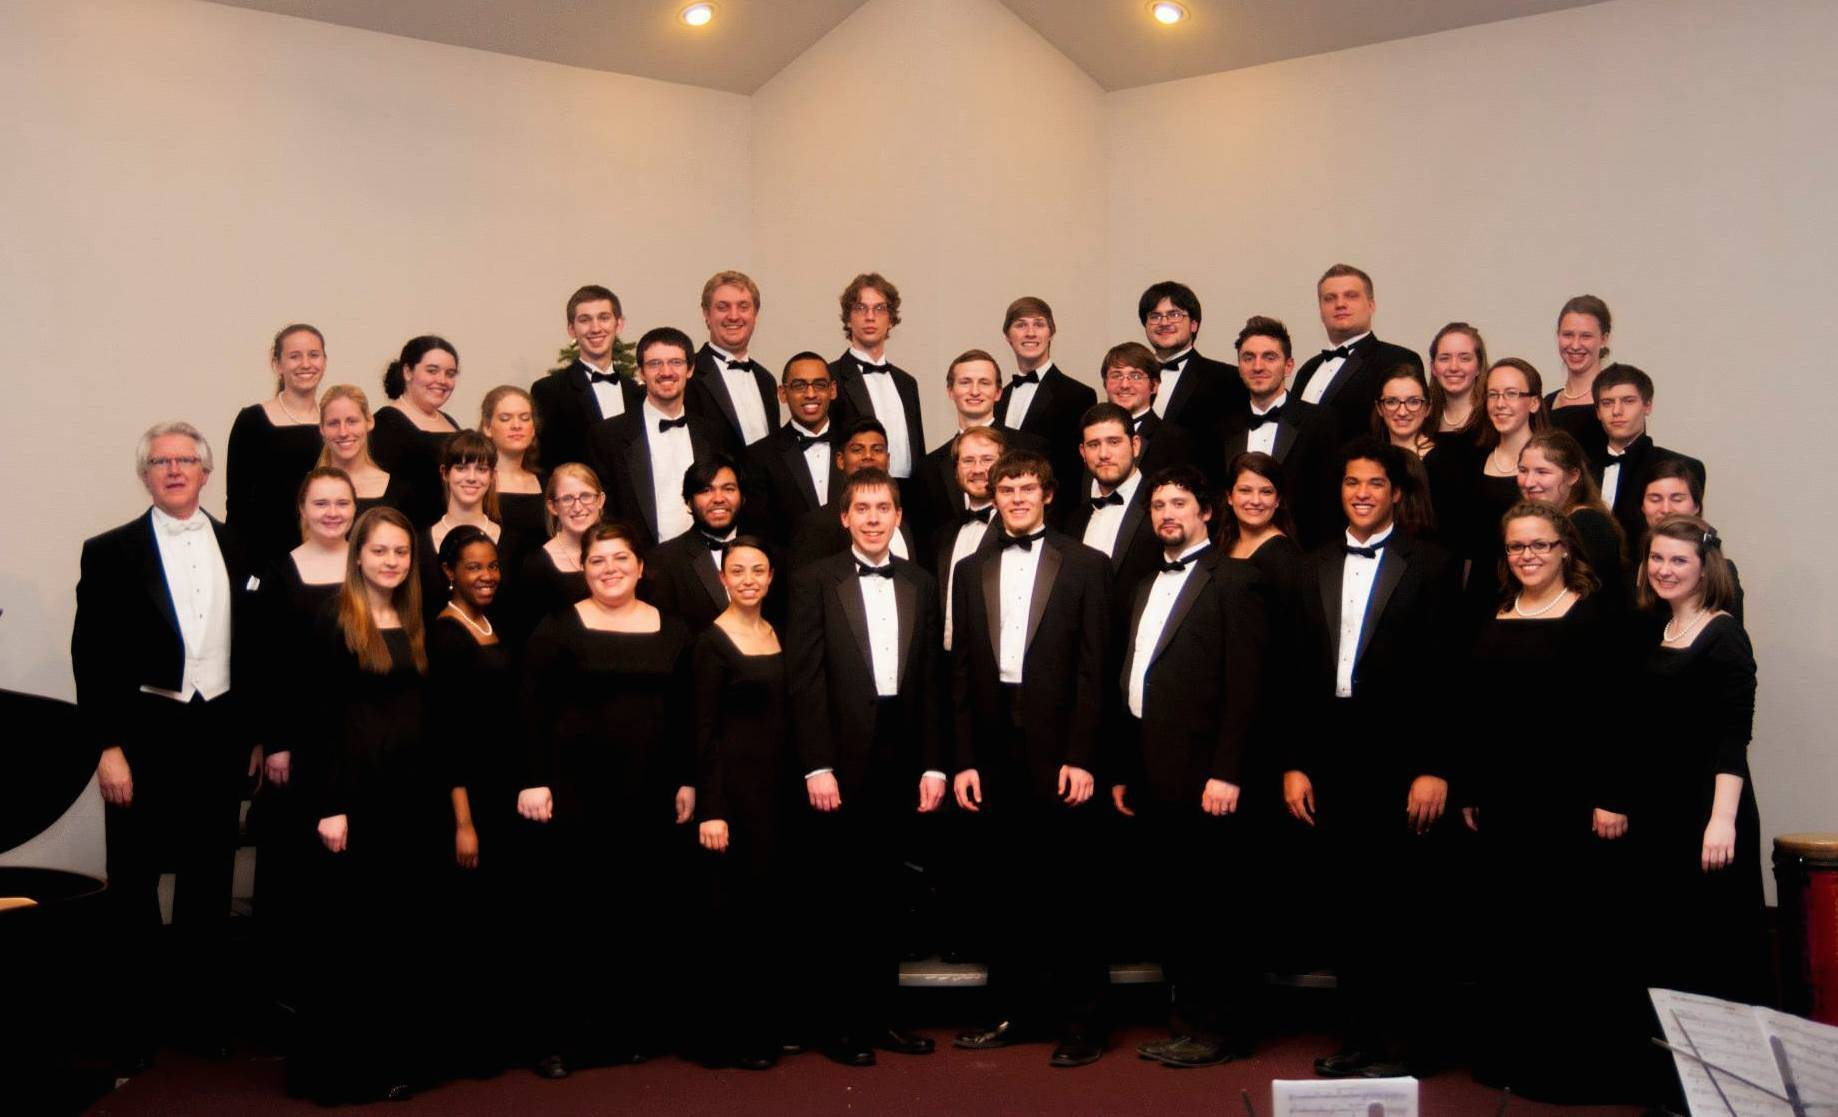 The Concert Choir of Trinity International University will perform on Sunday afternoon, May 4, on the campus in Deerfield.